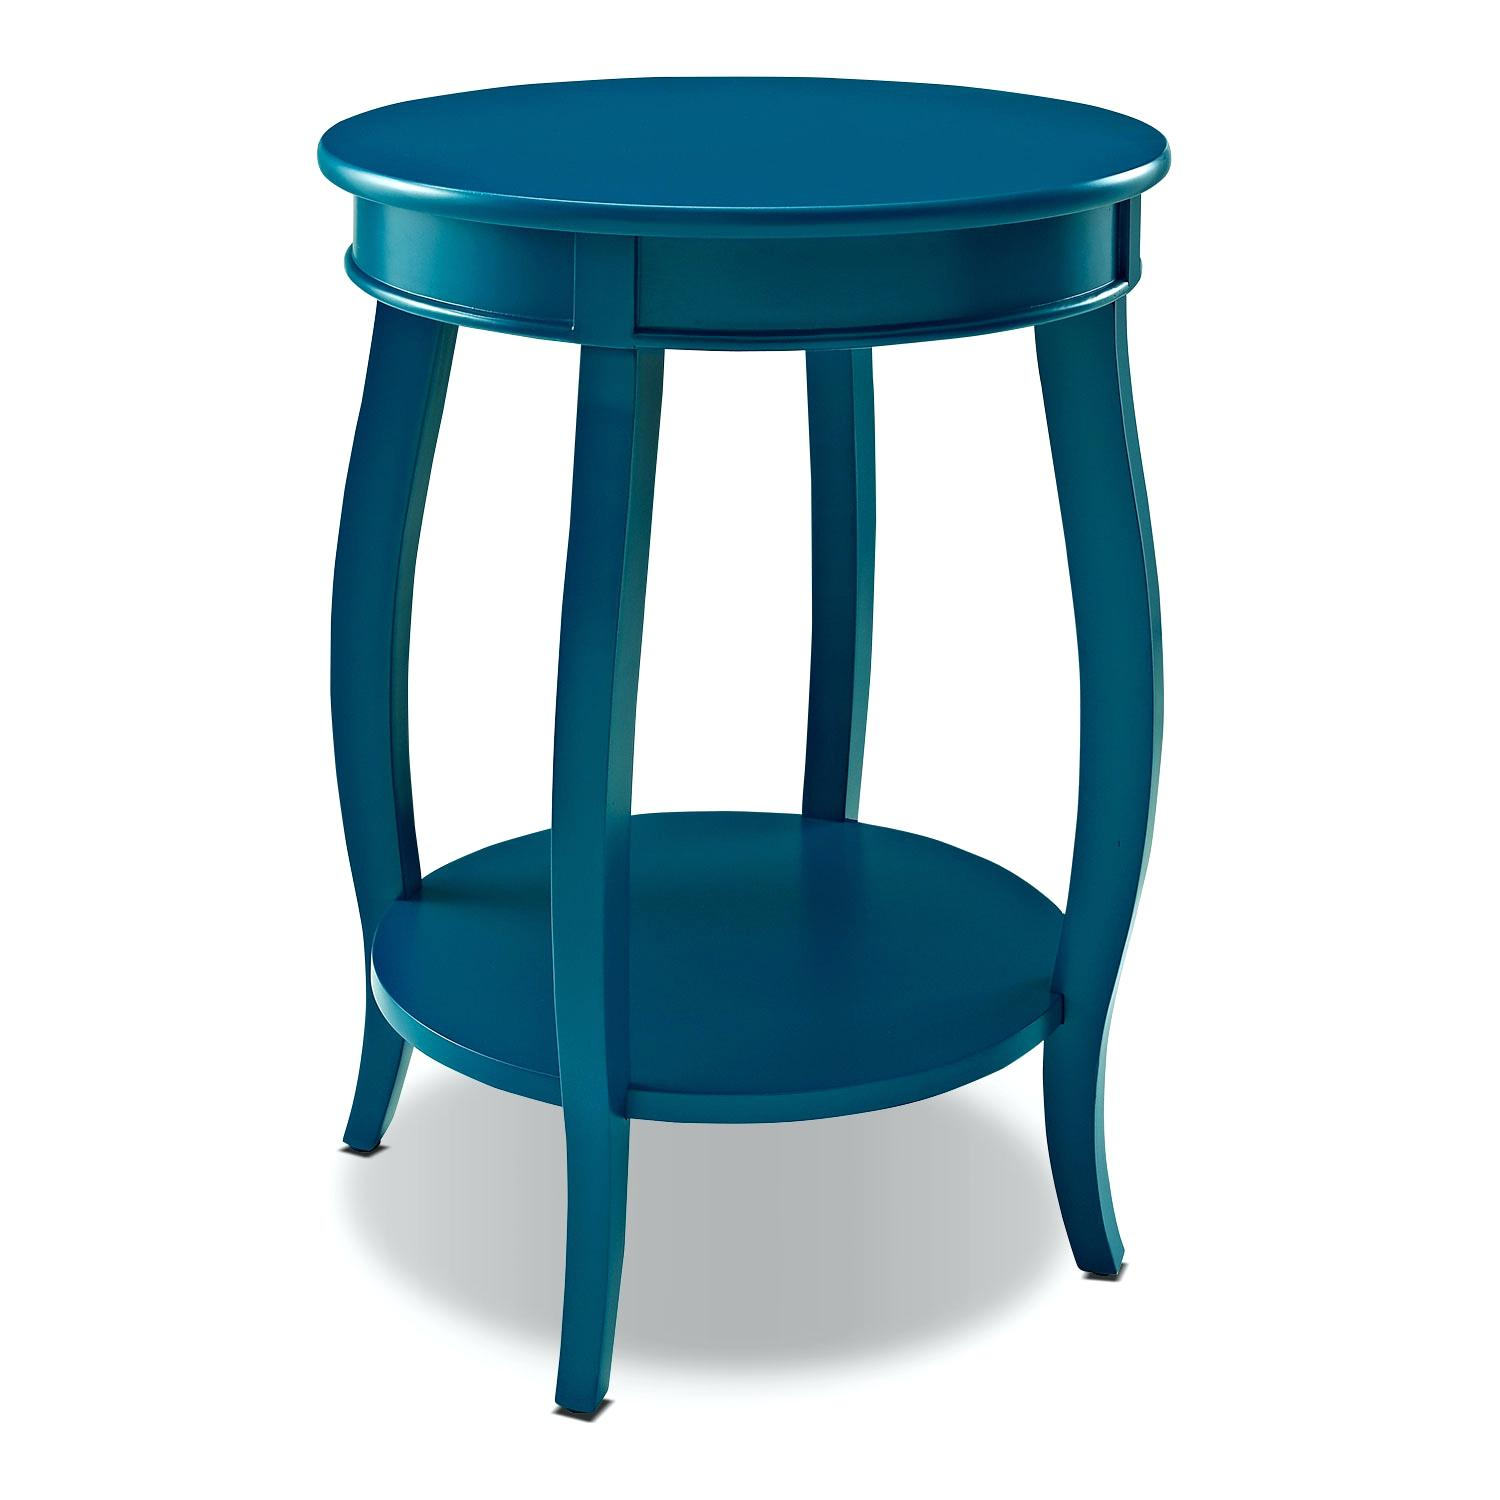 navy accent table target coffee teal side tables aster blue antique and occasional furniture fretwork threshold best wood for chairs small console hallway cabinet end swing arm